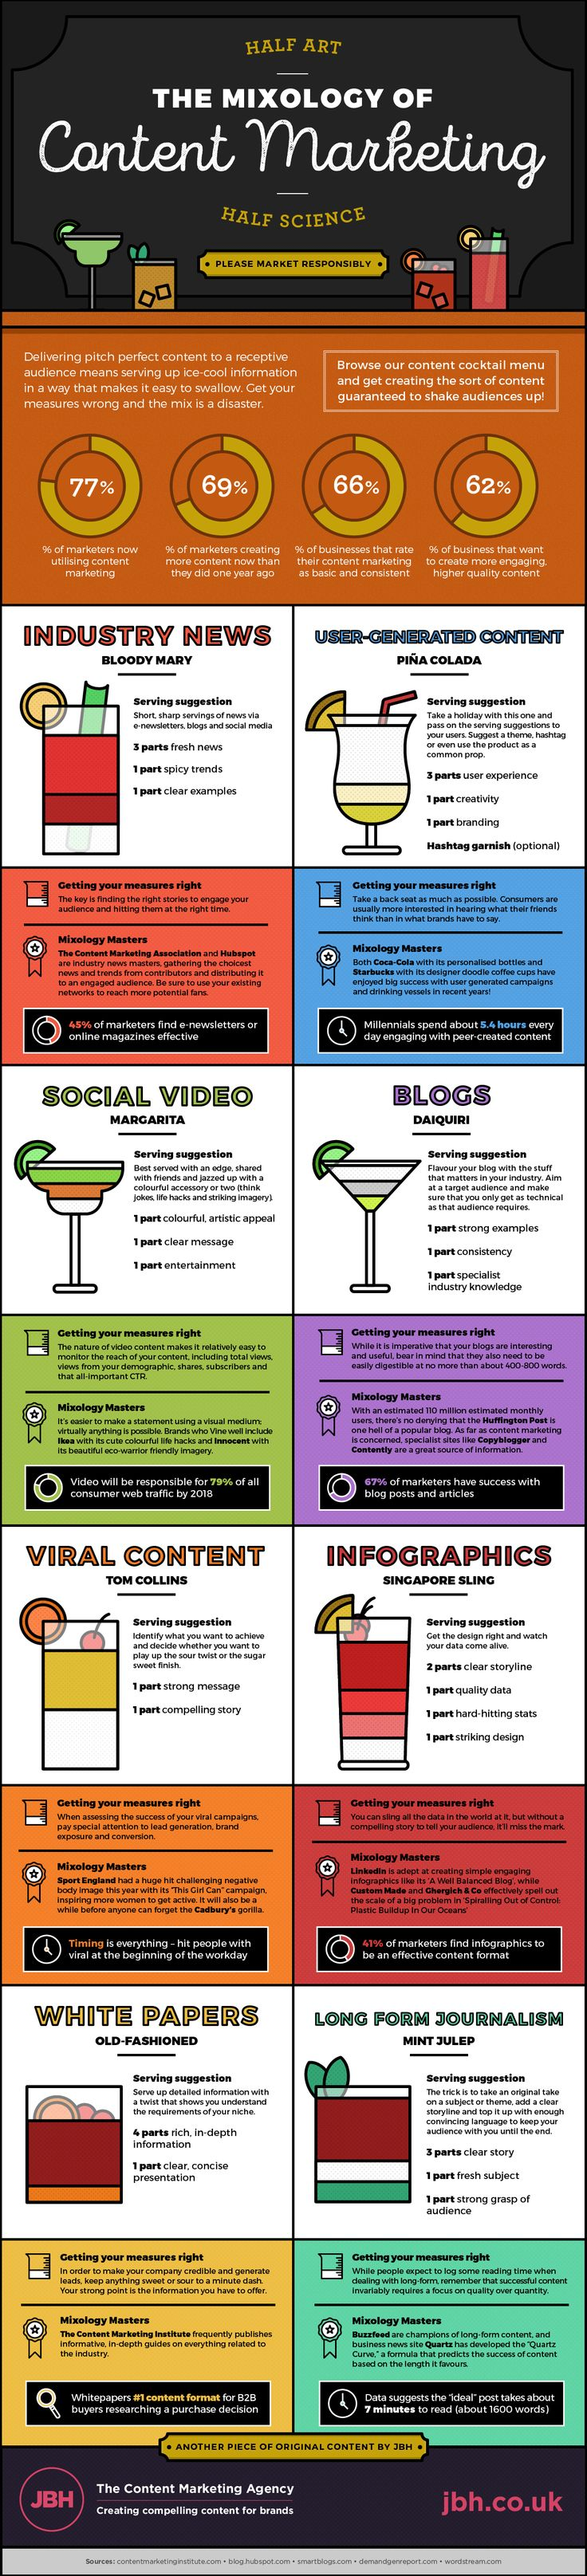 [Infographie] Si le Content Marketing était un cocktail... || The Mixology of Content Marketing [Infographic] #SEO #digital #marketing #inbound